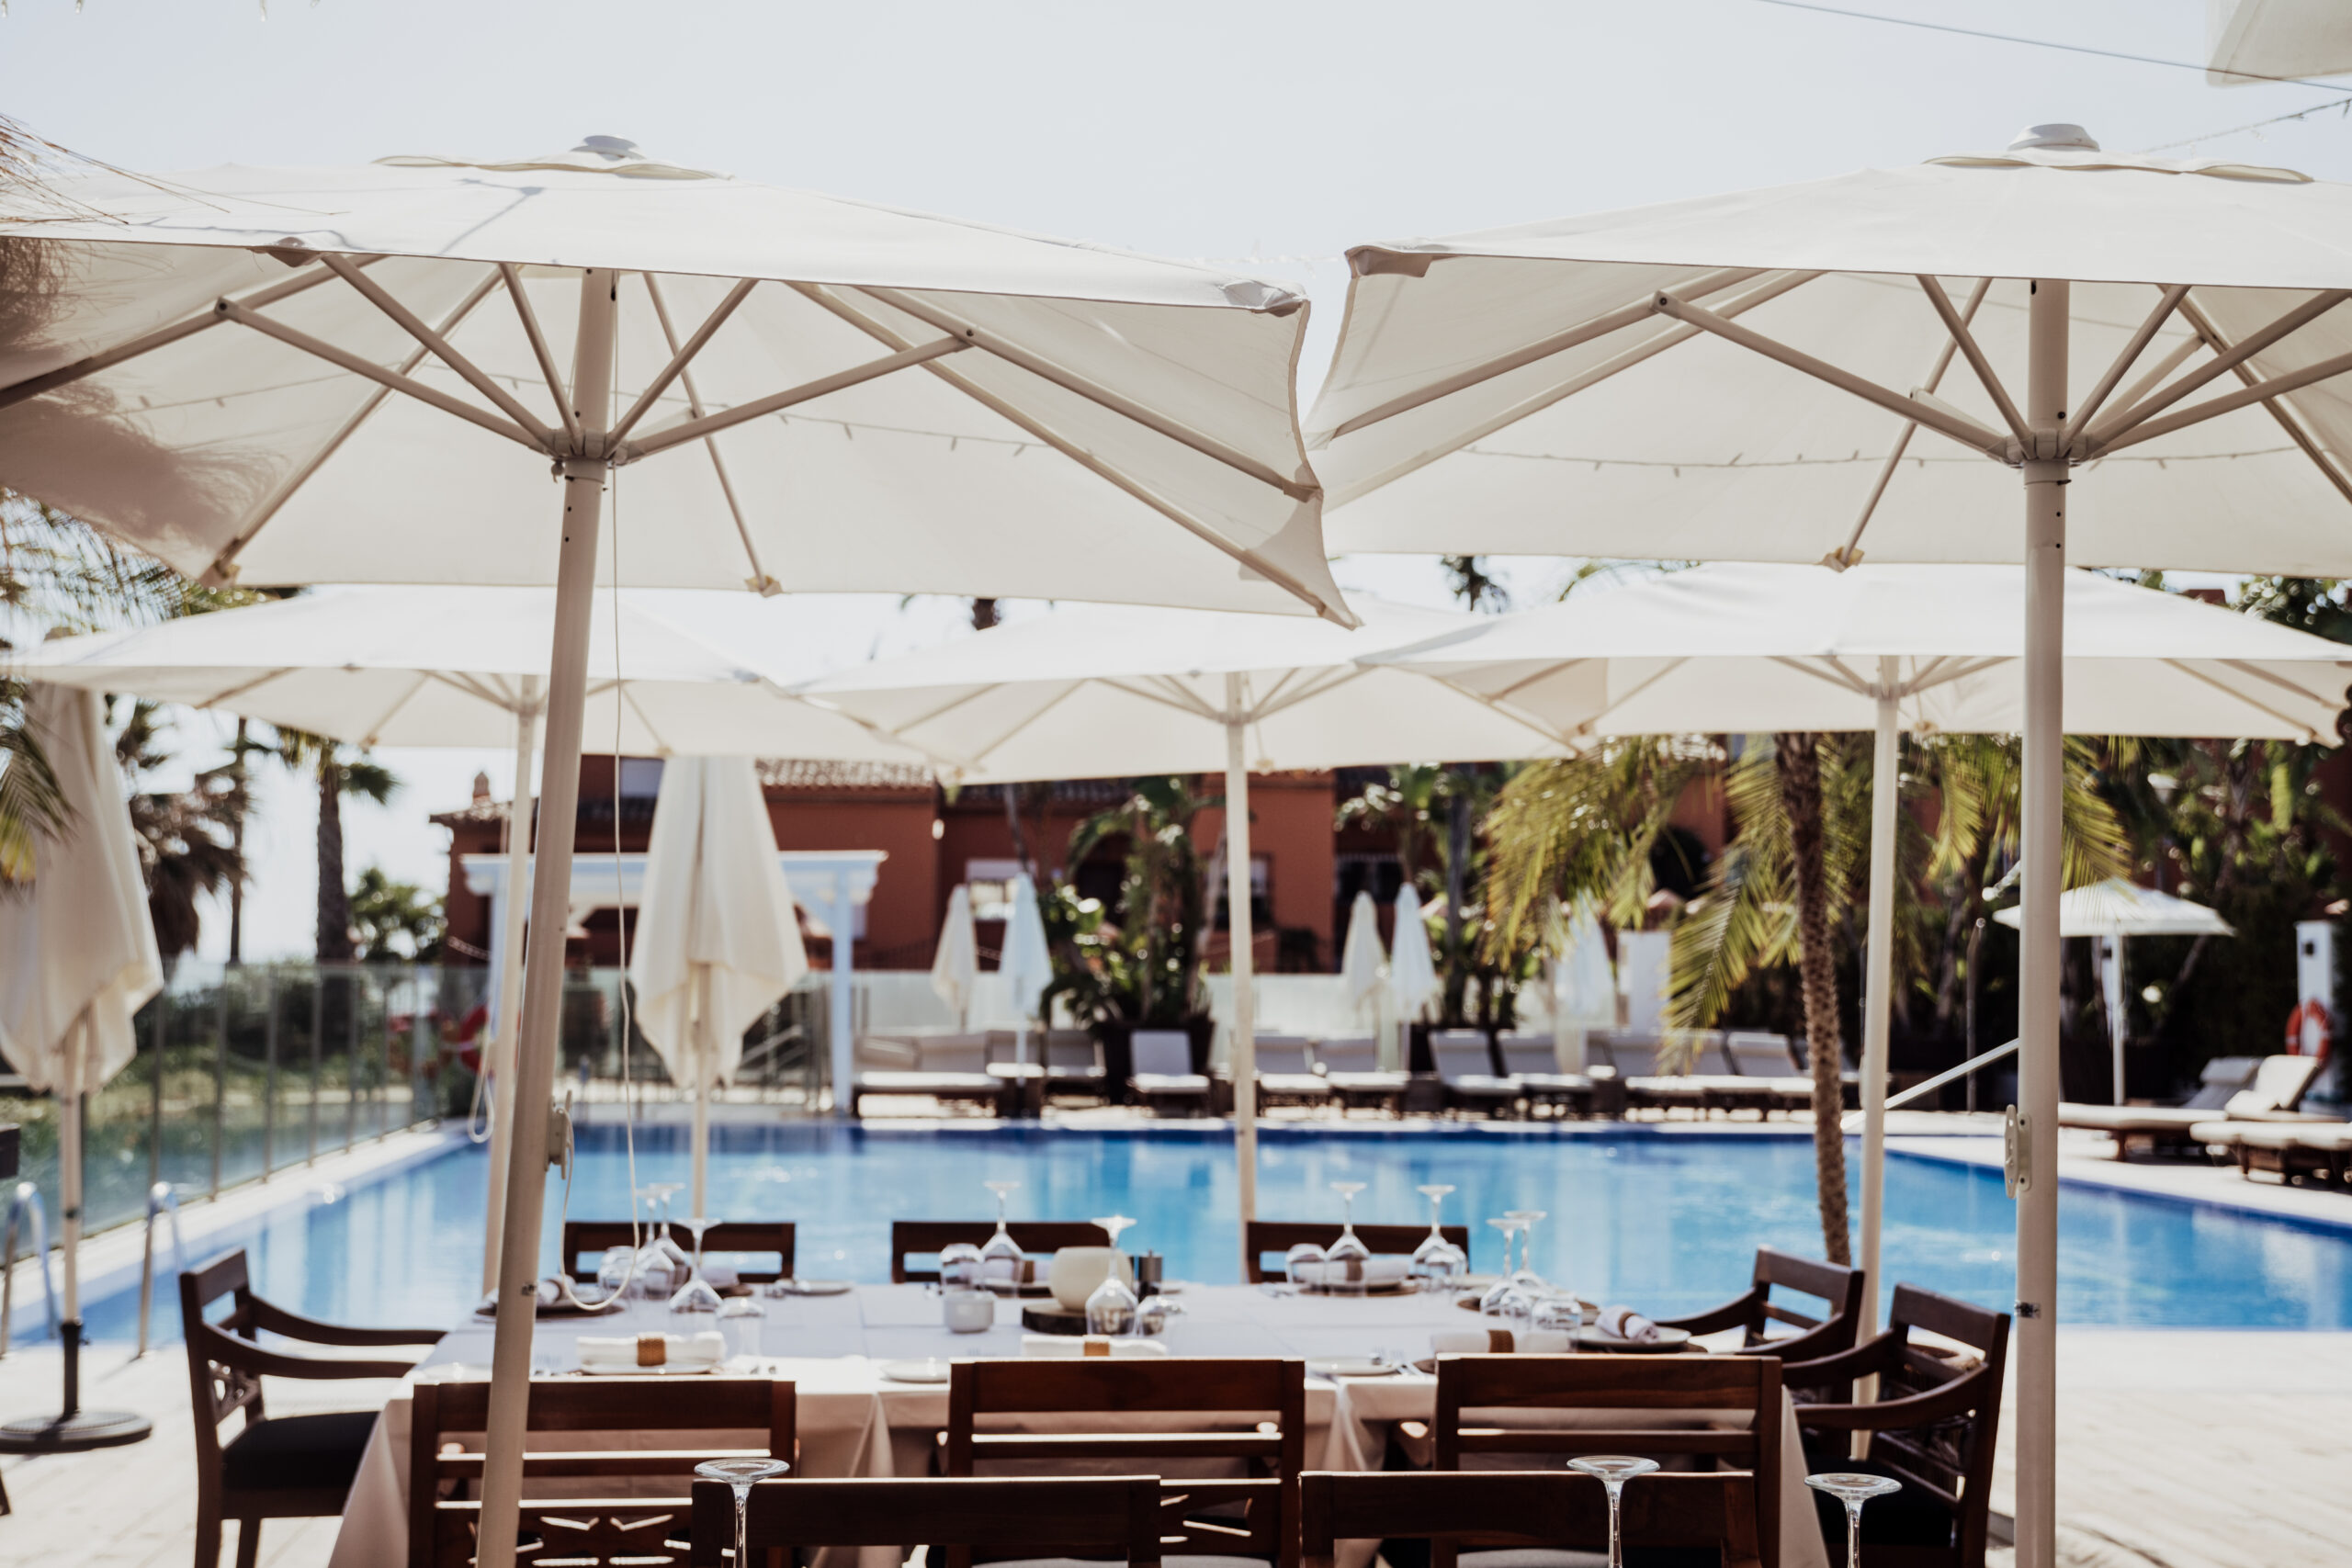 The Beach Club's deluxe swimming pool and table settings - Rebecca Davidson Photography